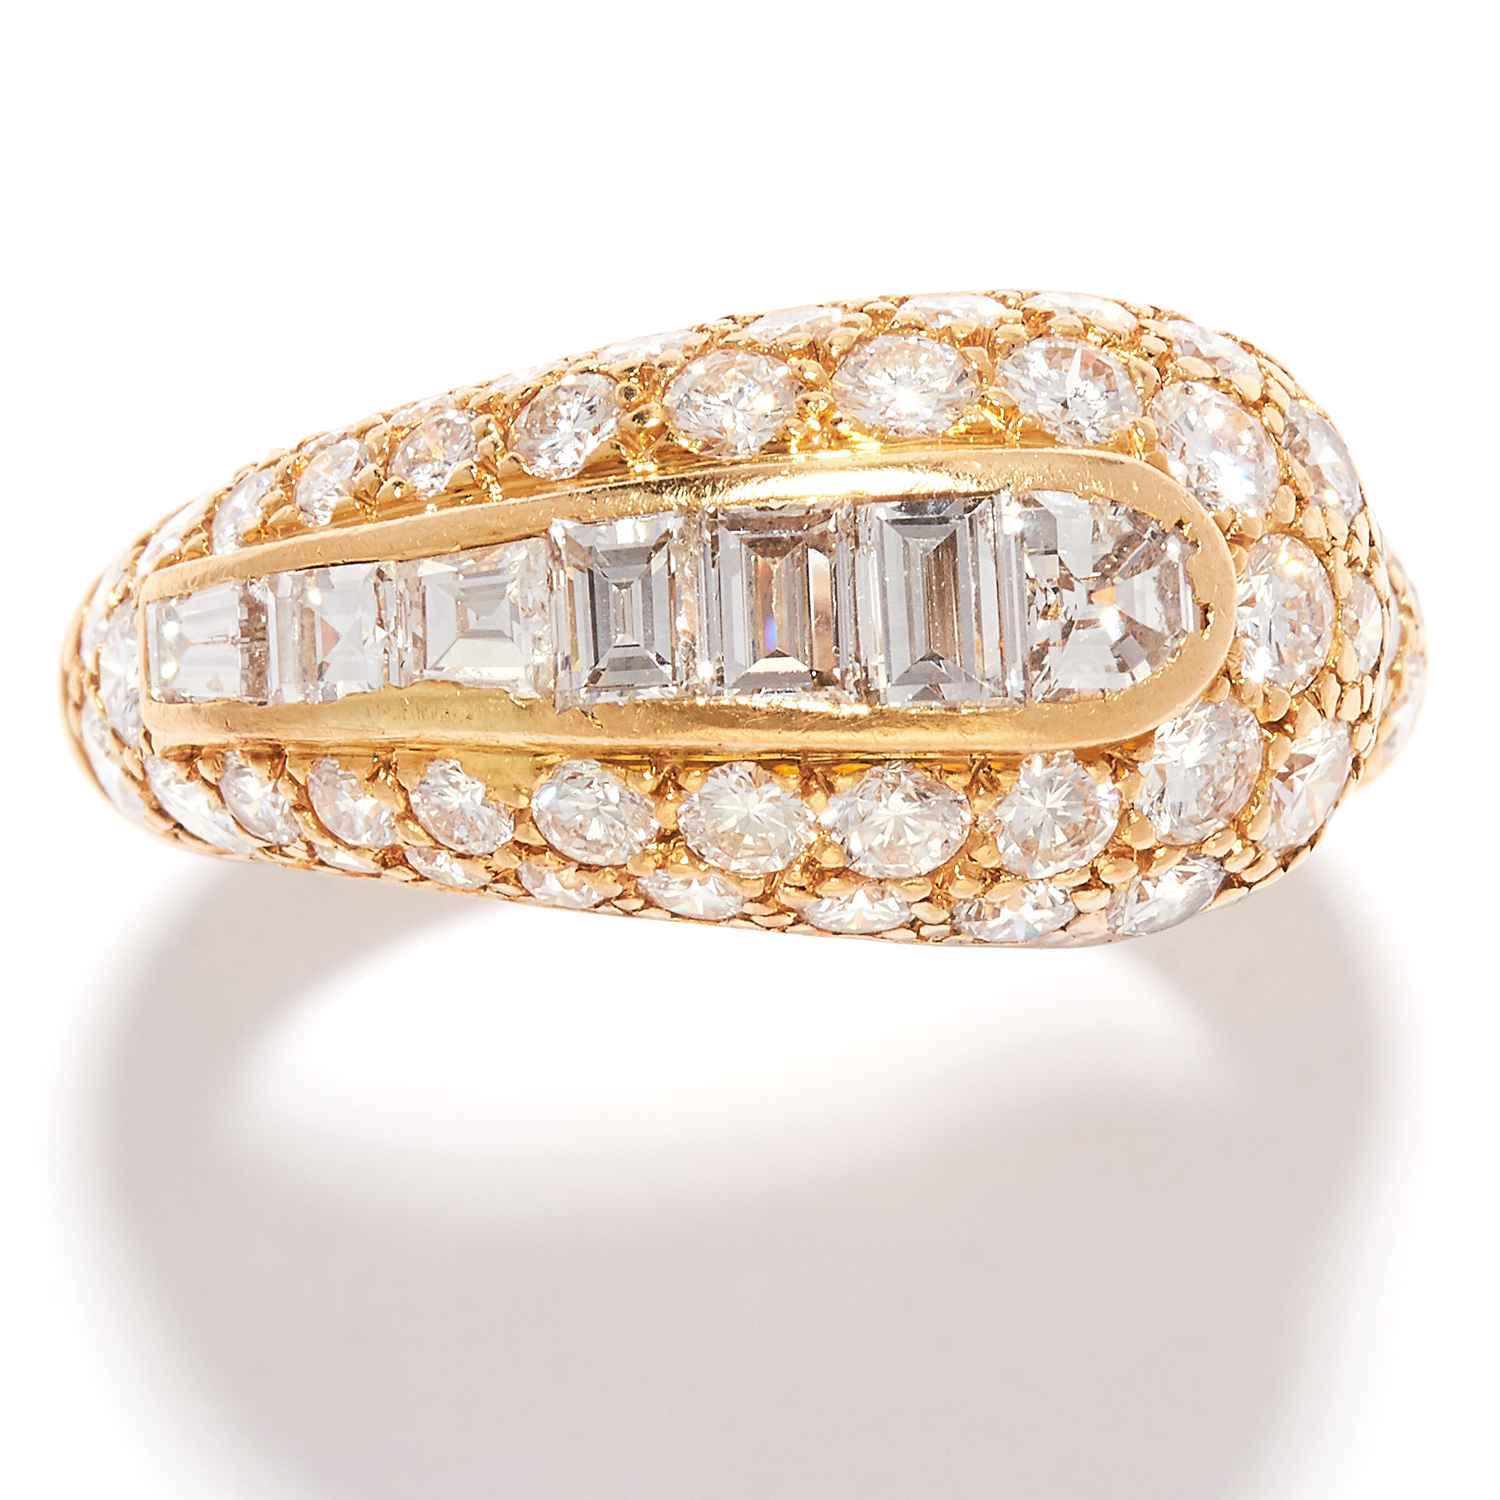 VINTAGE DIAMOND DRESS RING, BOUCHERON in 18ct yellow gold, the graduated, coiled band jewelled